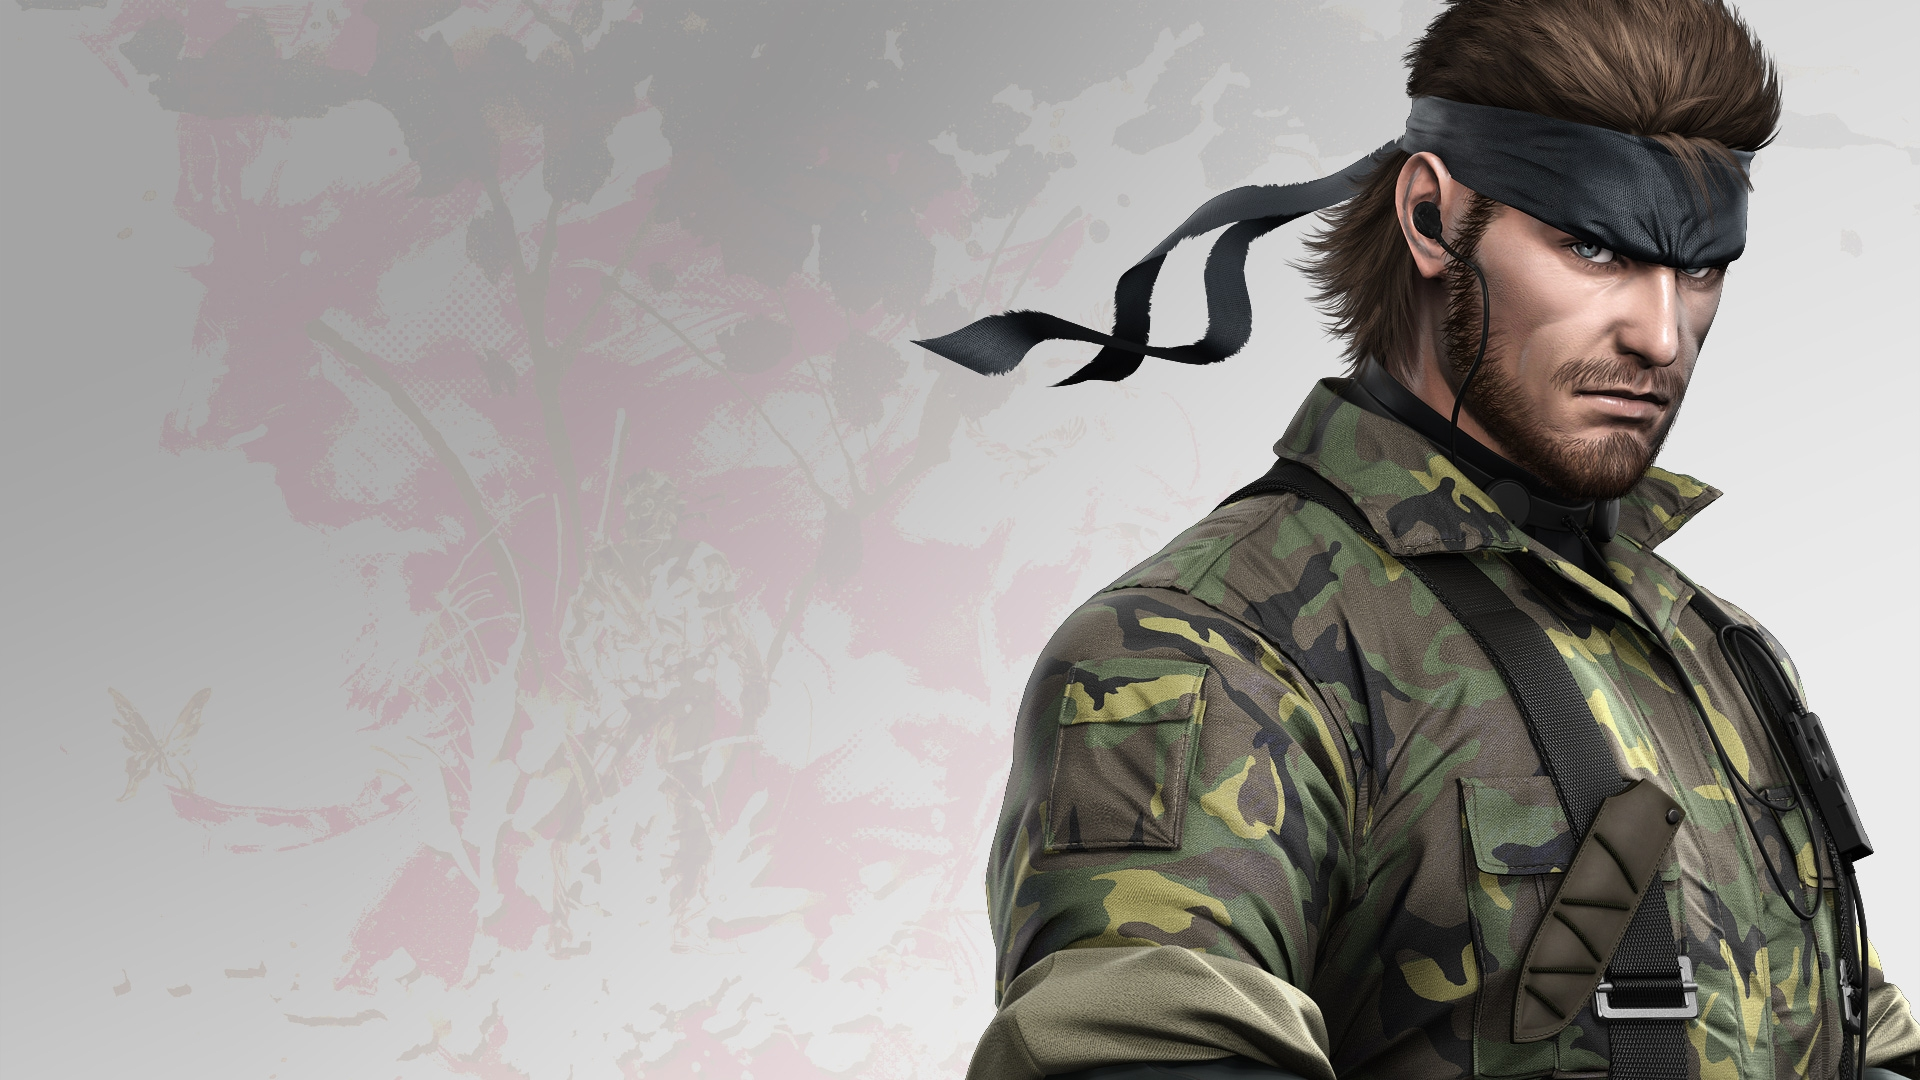 Free Download Metal Gear Solid Snake Hd Wallpaper 1920x1080 For